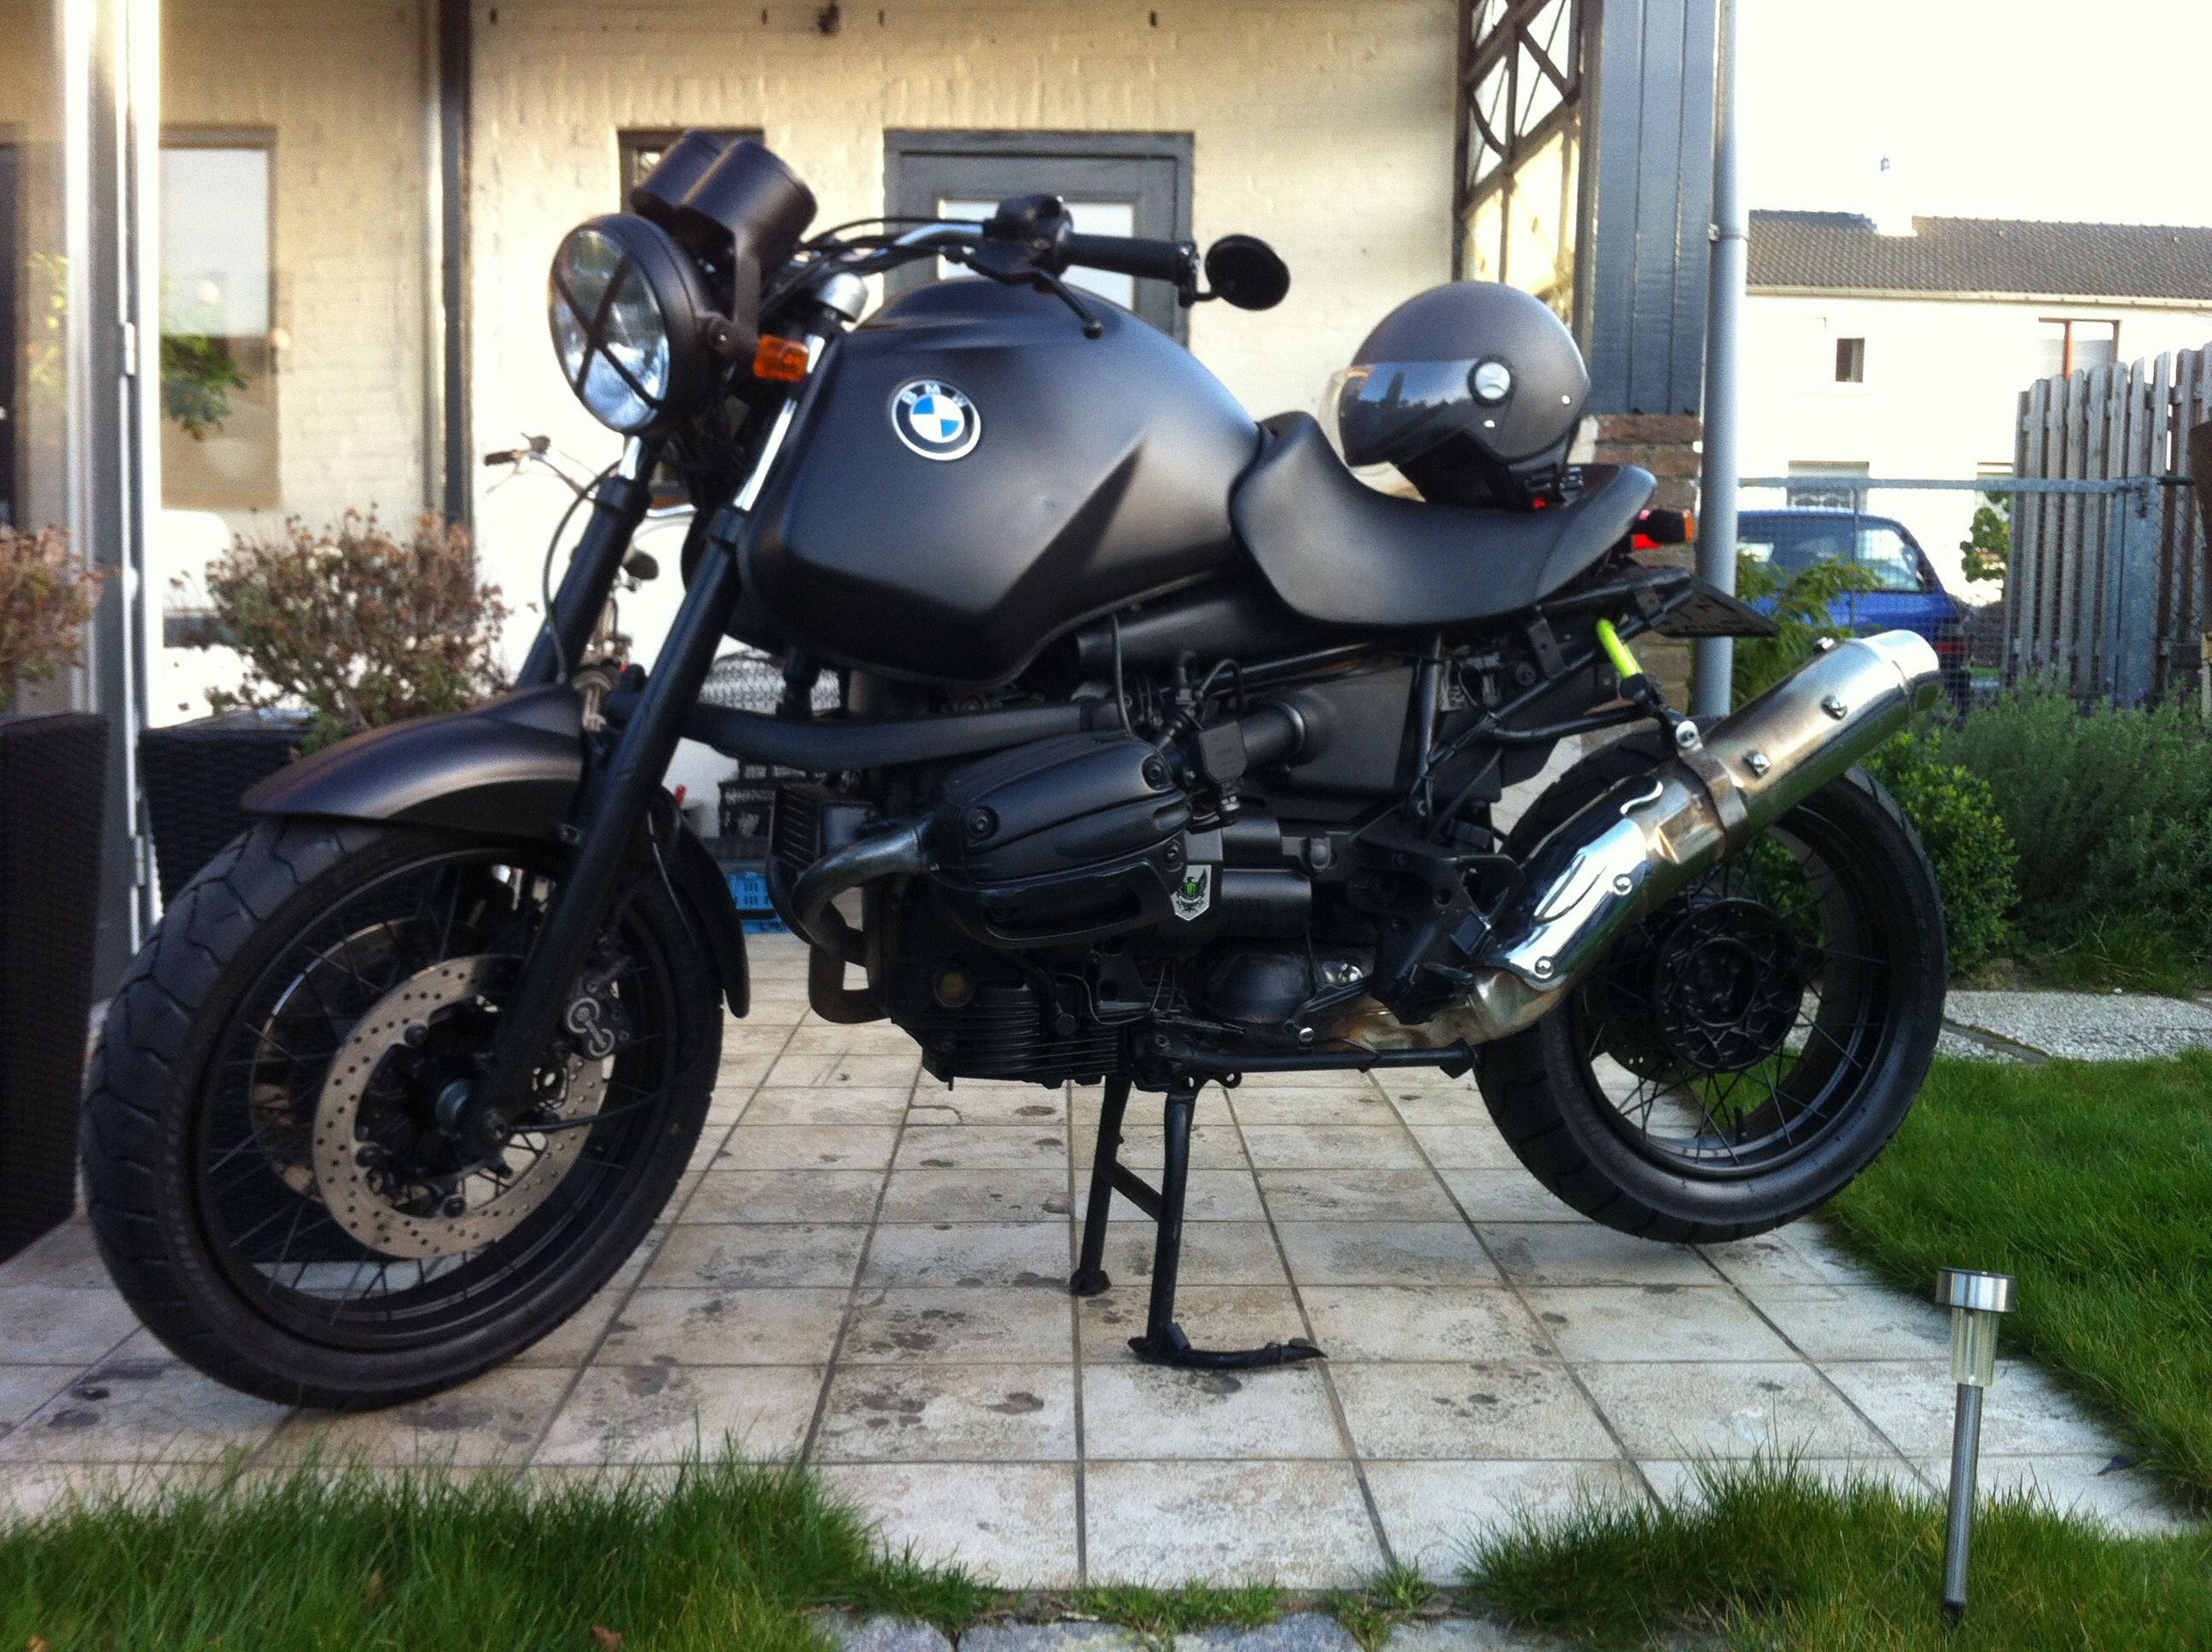 8b59f51f4d4a92b434264f6f5d14e2a1 Extraordinary Bmw R 1200 R Street Fighter Cars Trend